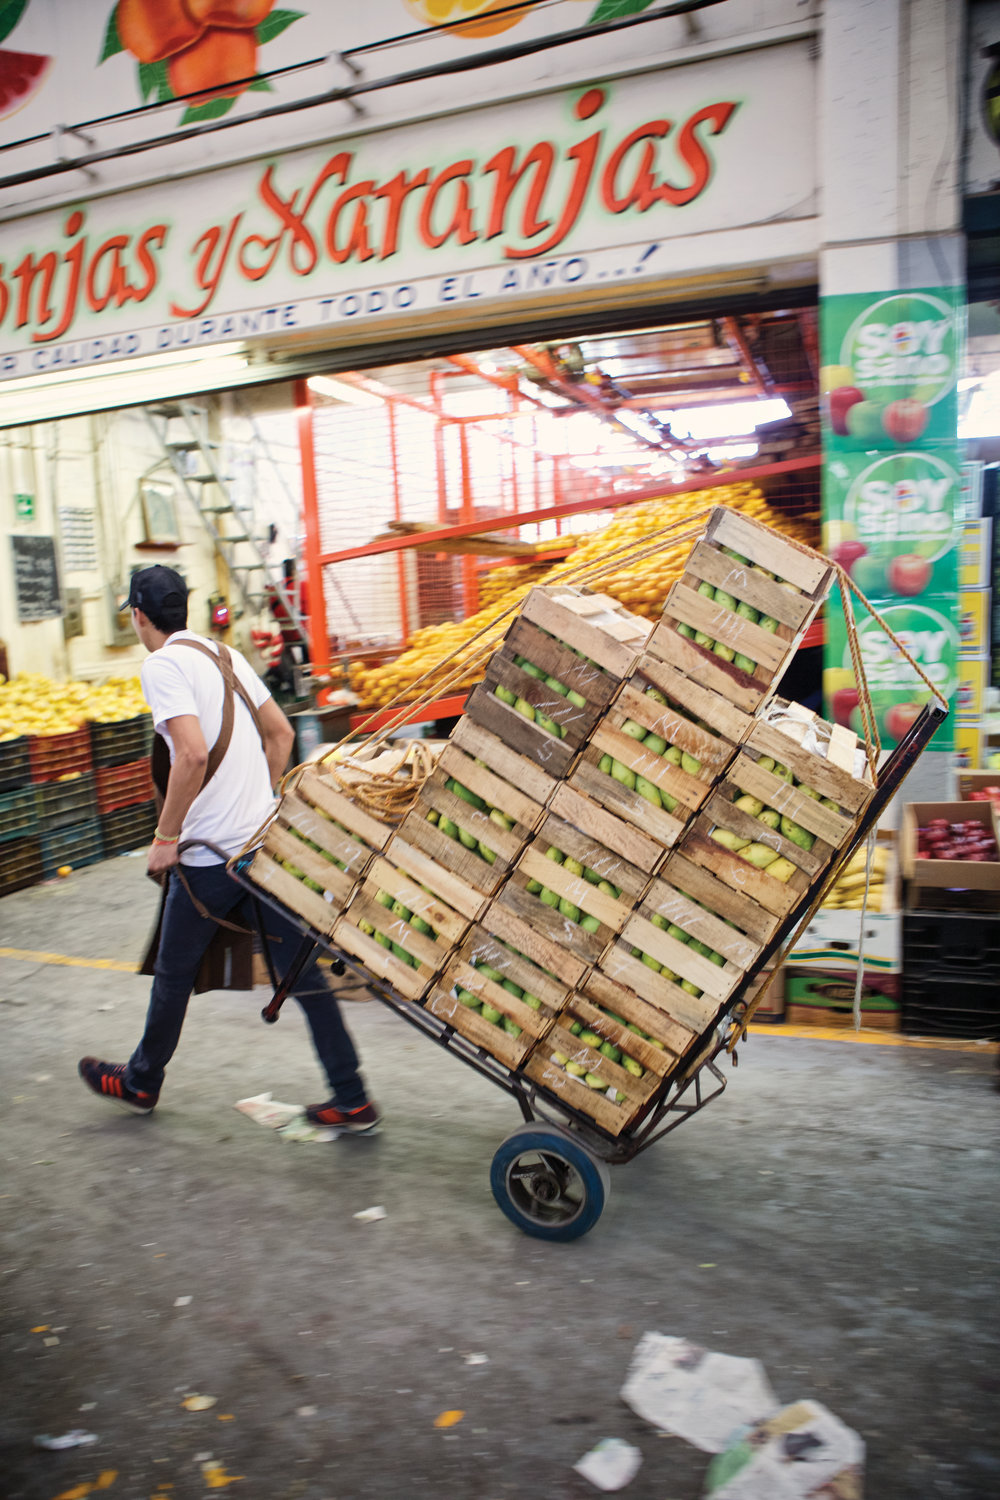 Copy of man carries cart of crates full of mangos